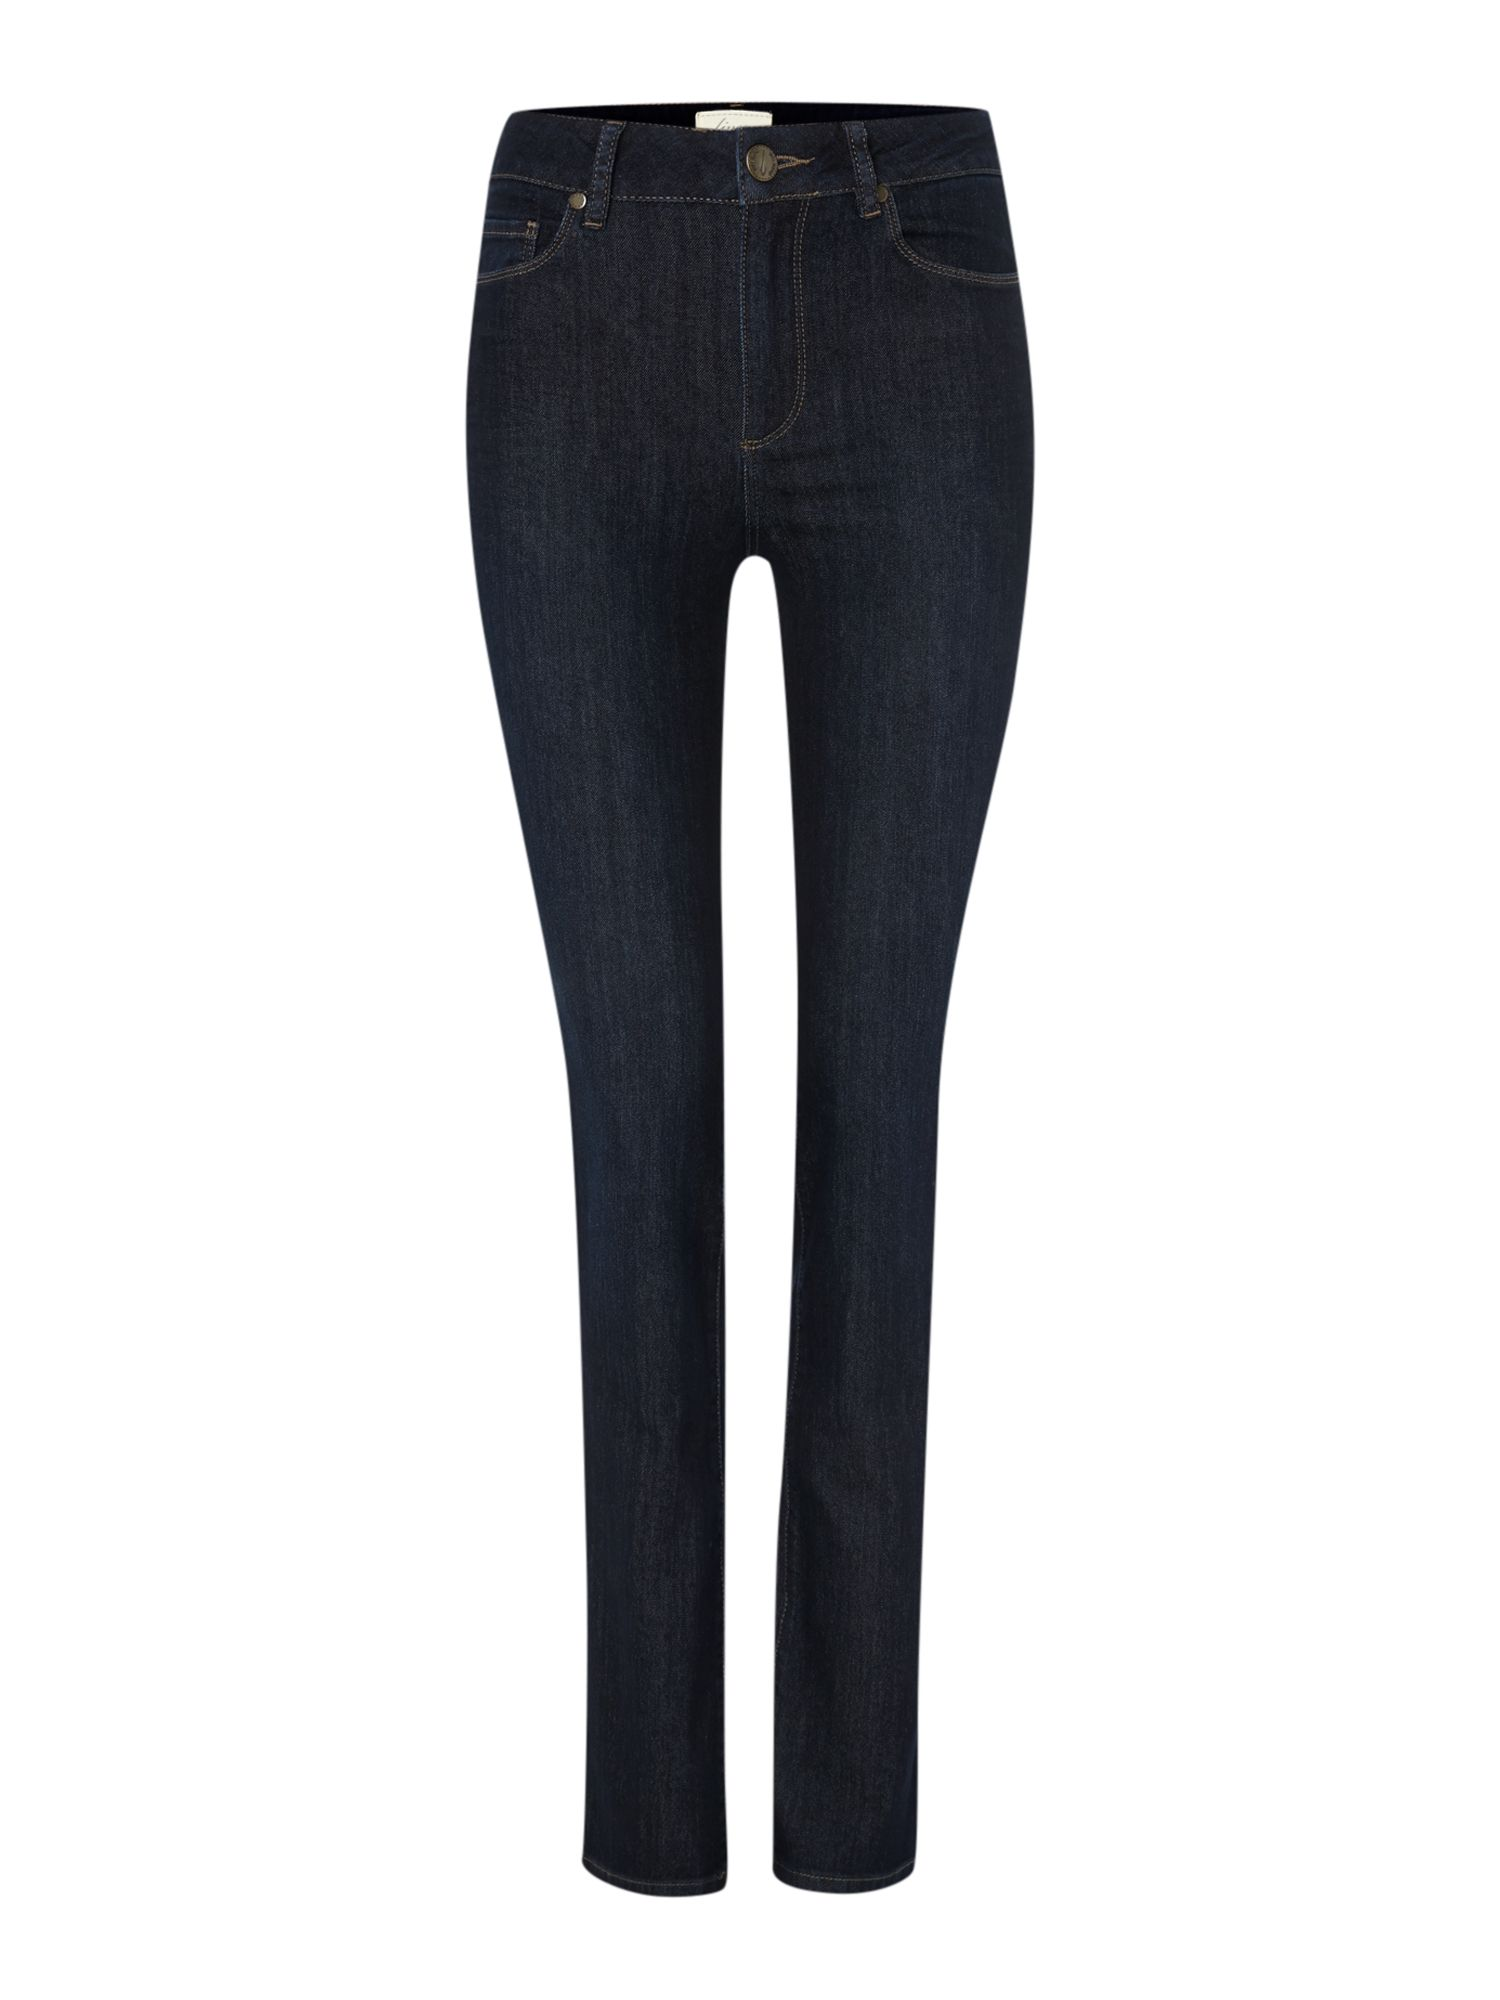 High waisted straight leg jeans